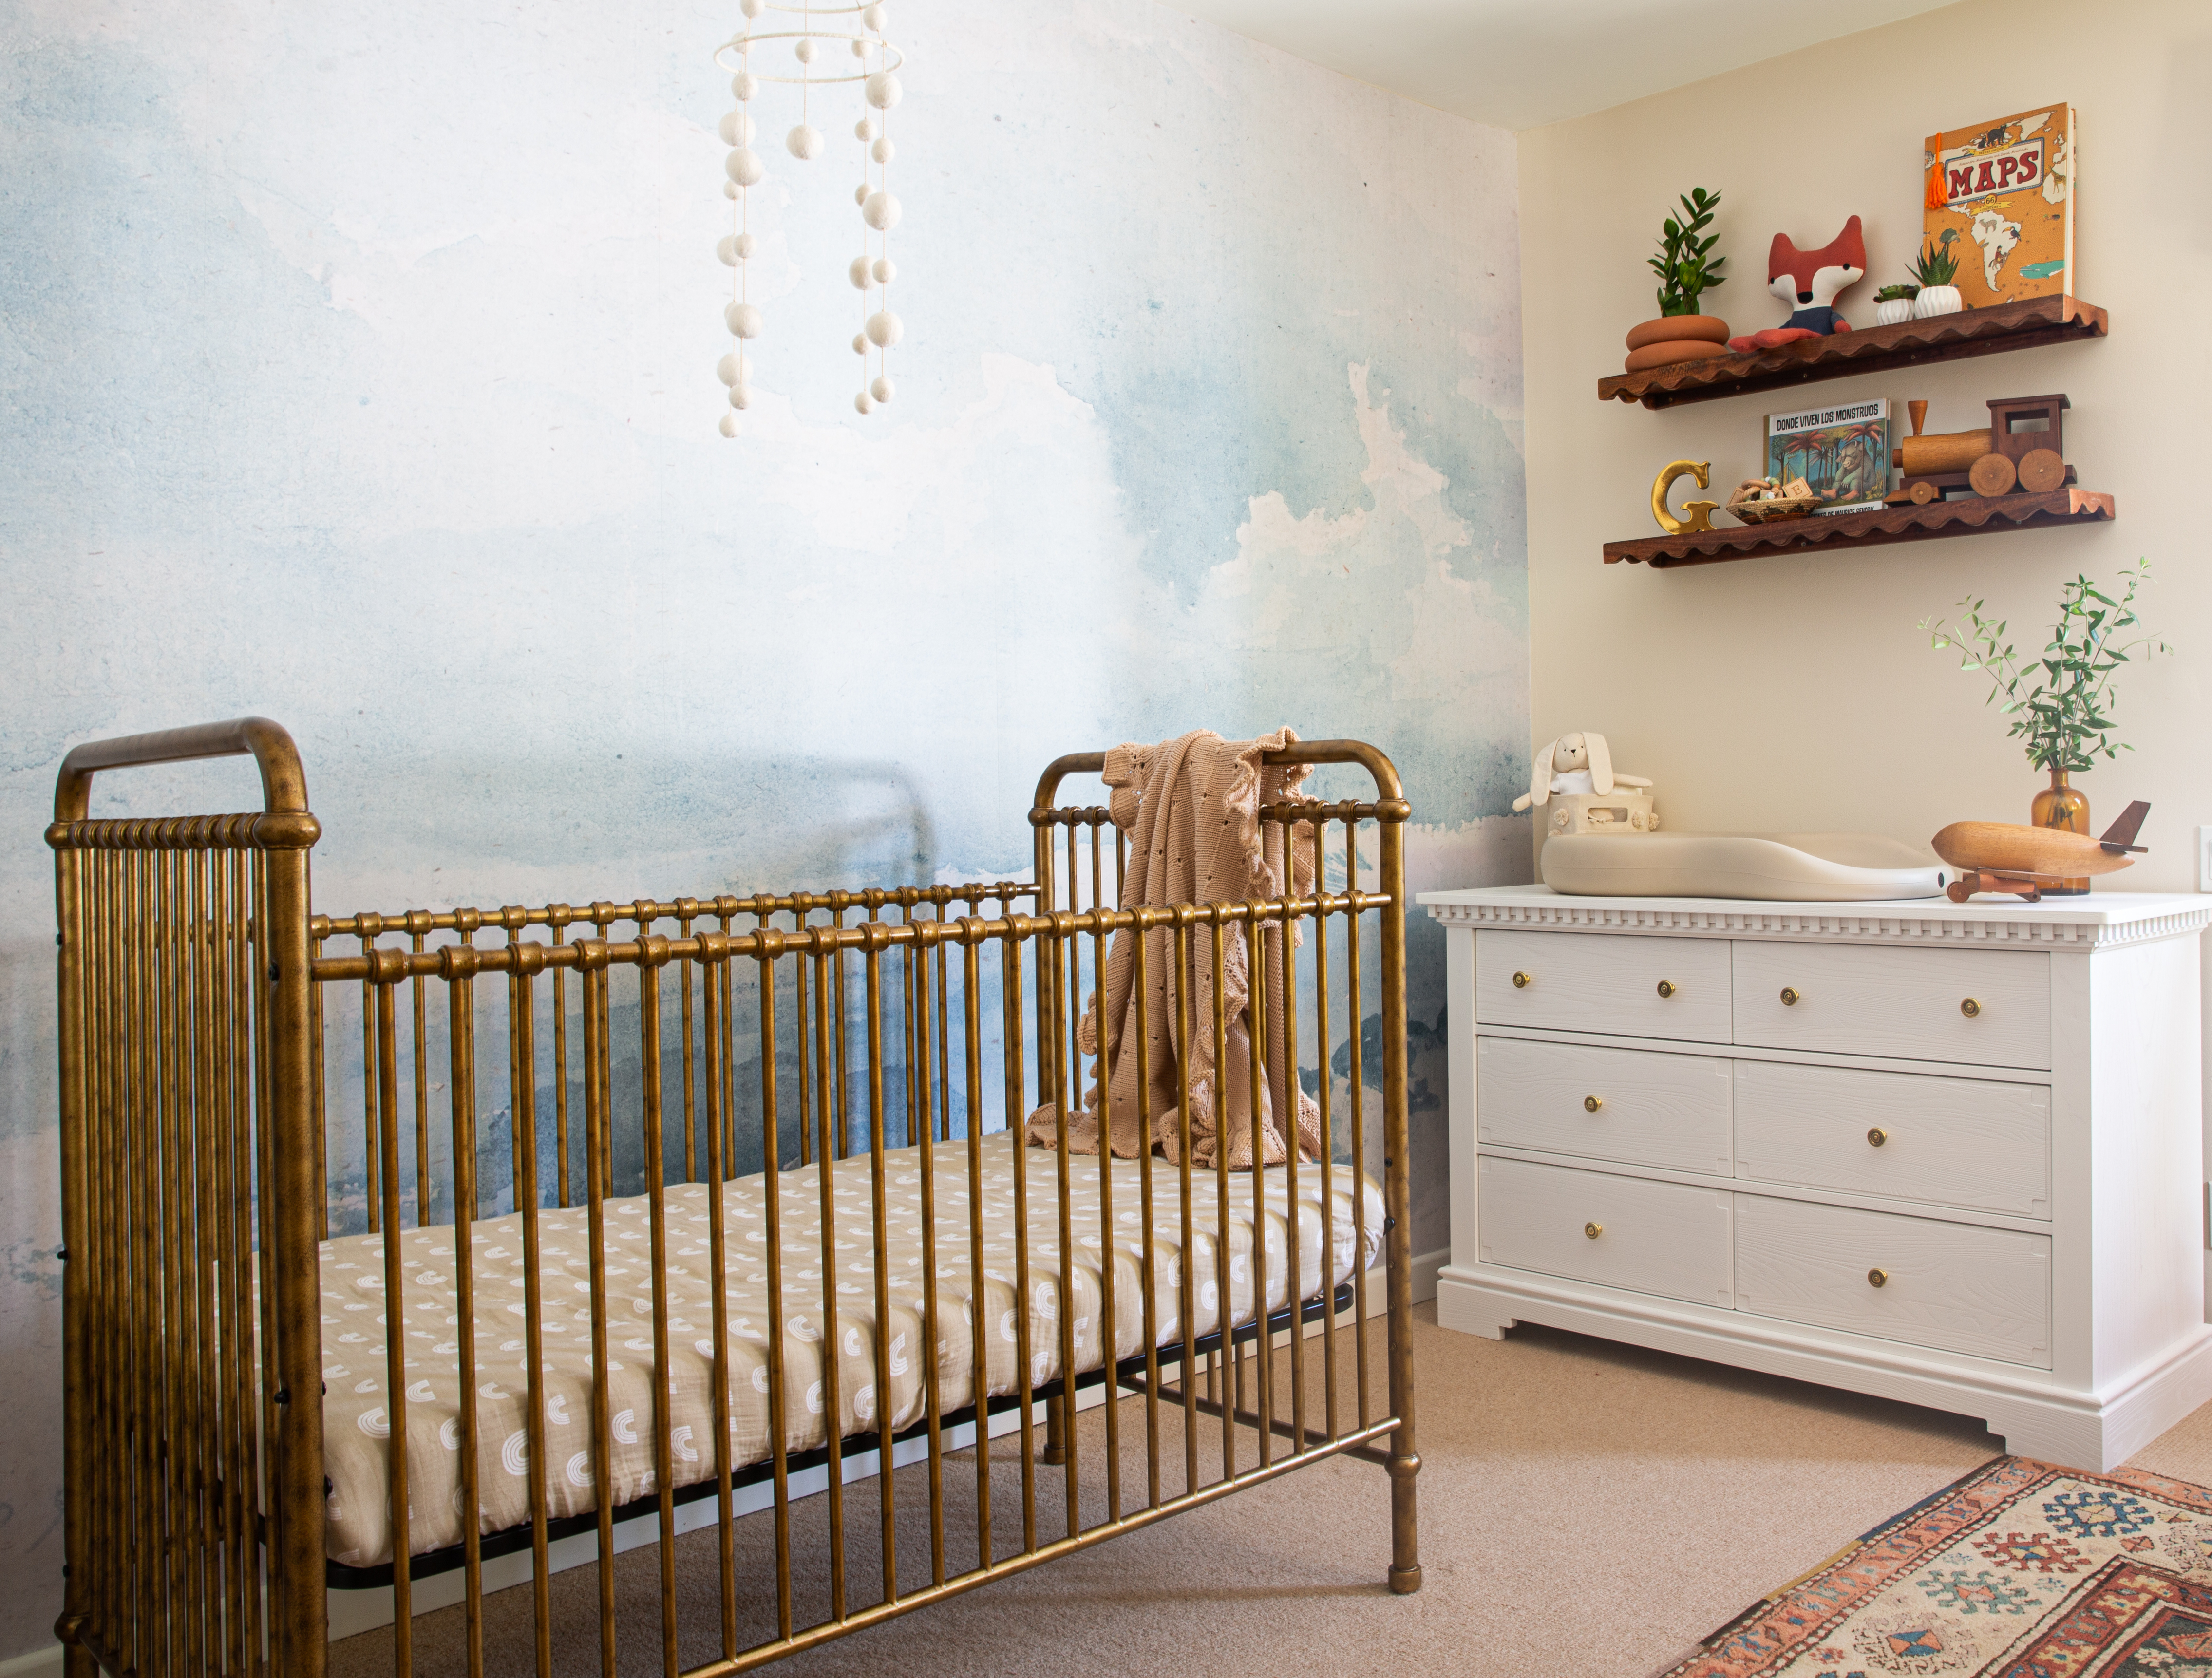 I swapped out the dresser pulls with antique brass knobs that would tie in with the gold crib in the nursery.